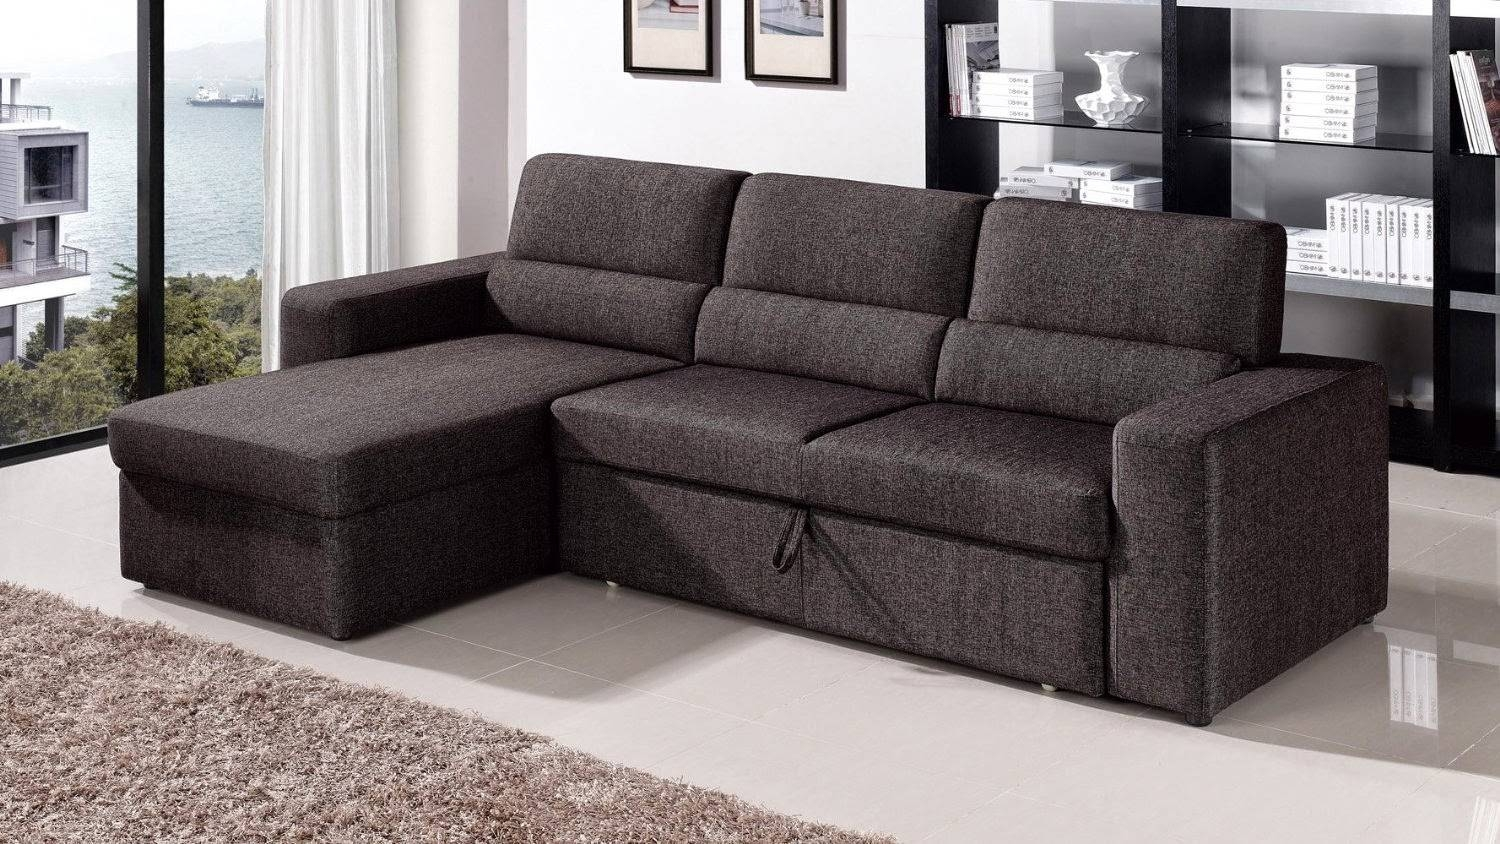 Best Collection Of Sleeper Sofas San Diego - Sofa bed san diego